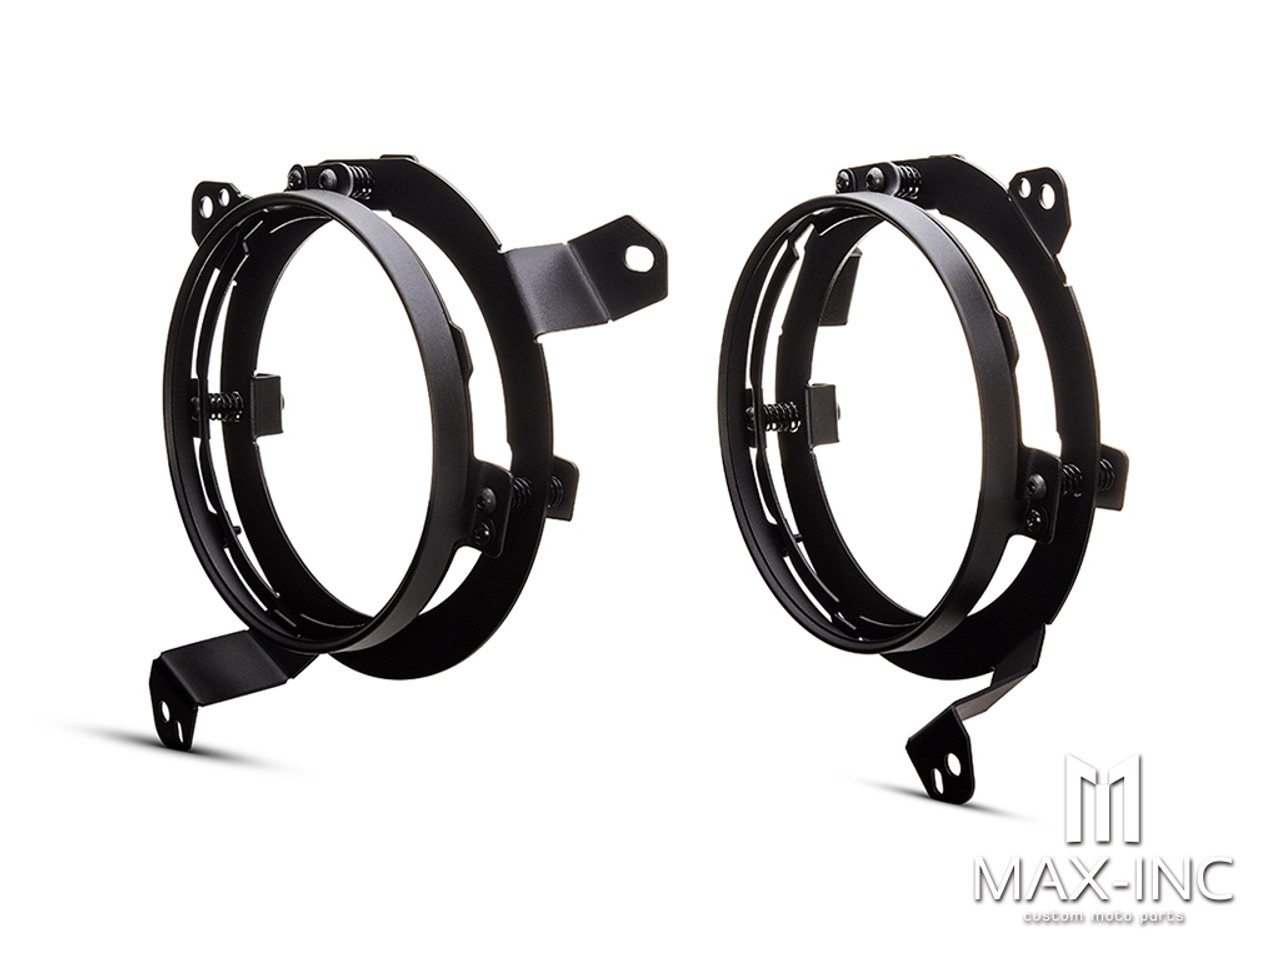 Jeep LED Headlight Upgrade Adapter Brackets - JL, JLU & JT Gladiator